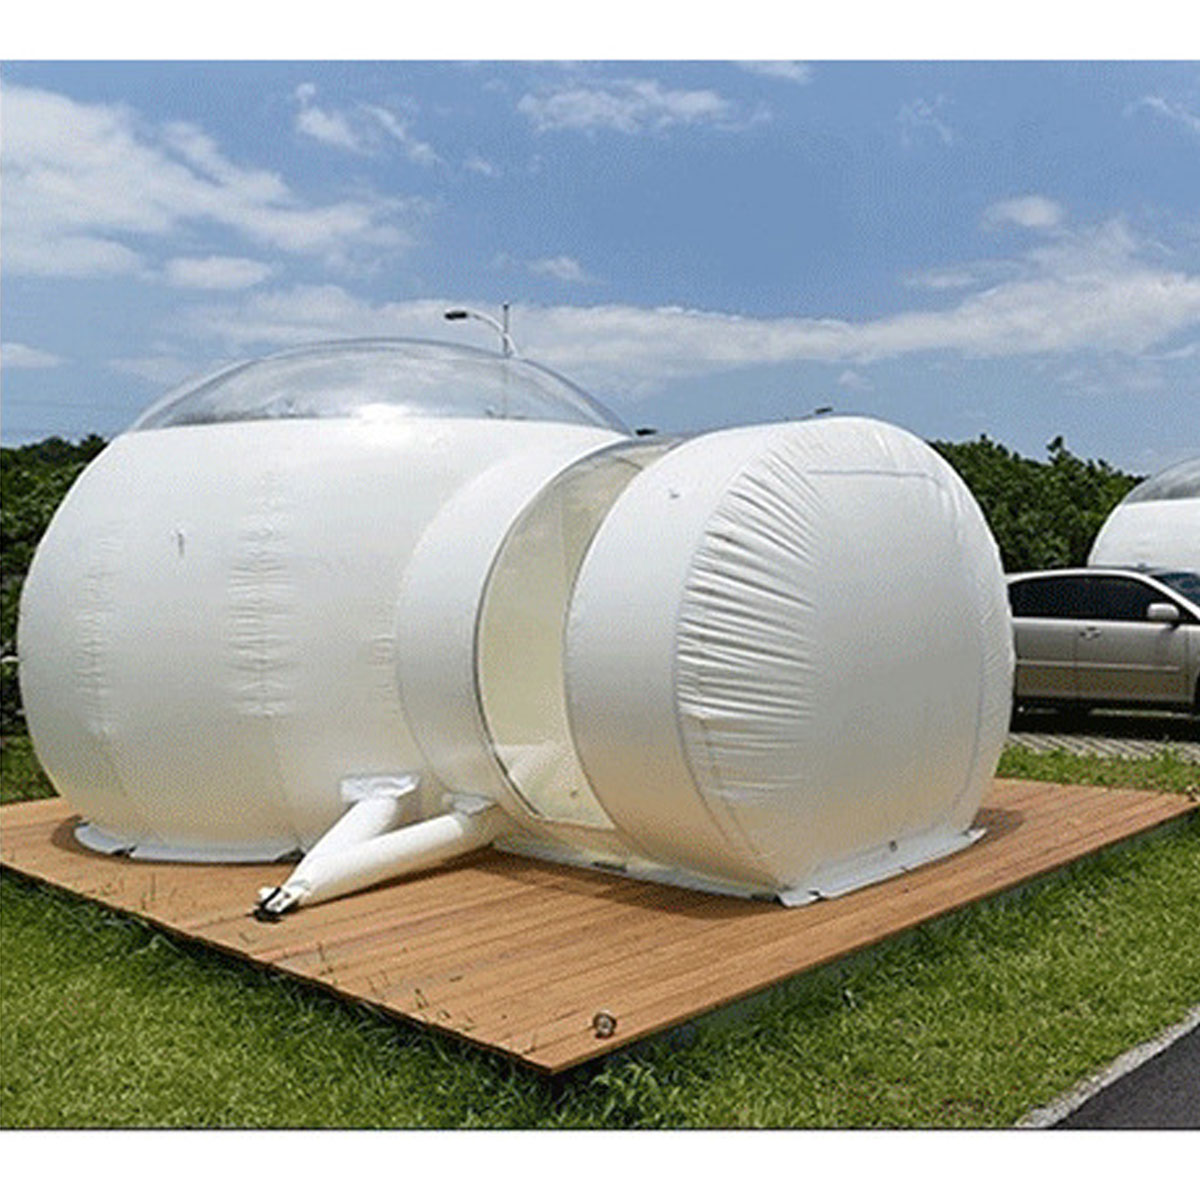 SGODDE 3 m gonflable Eco maison tente bricolage maison luxe dôme Camping cabine Lodge Air bulle - 2